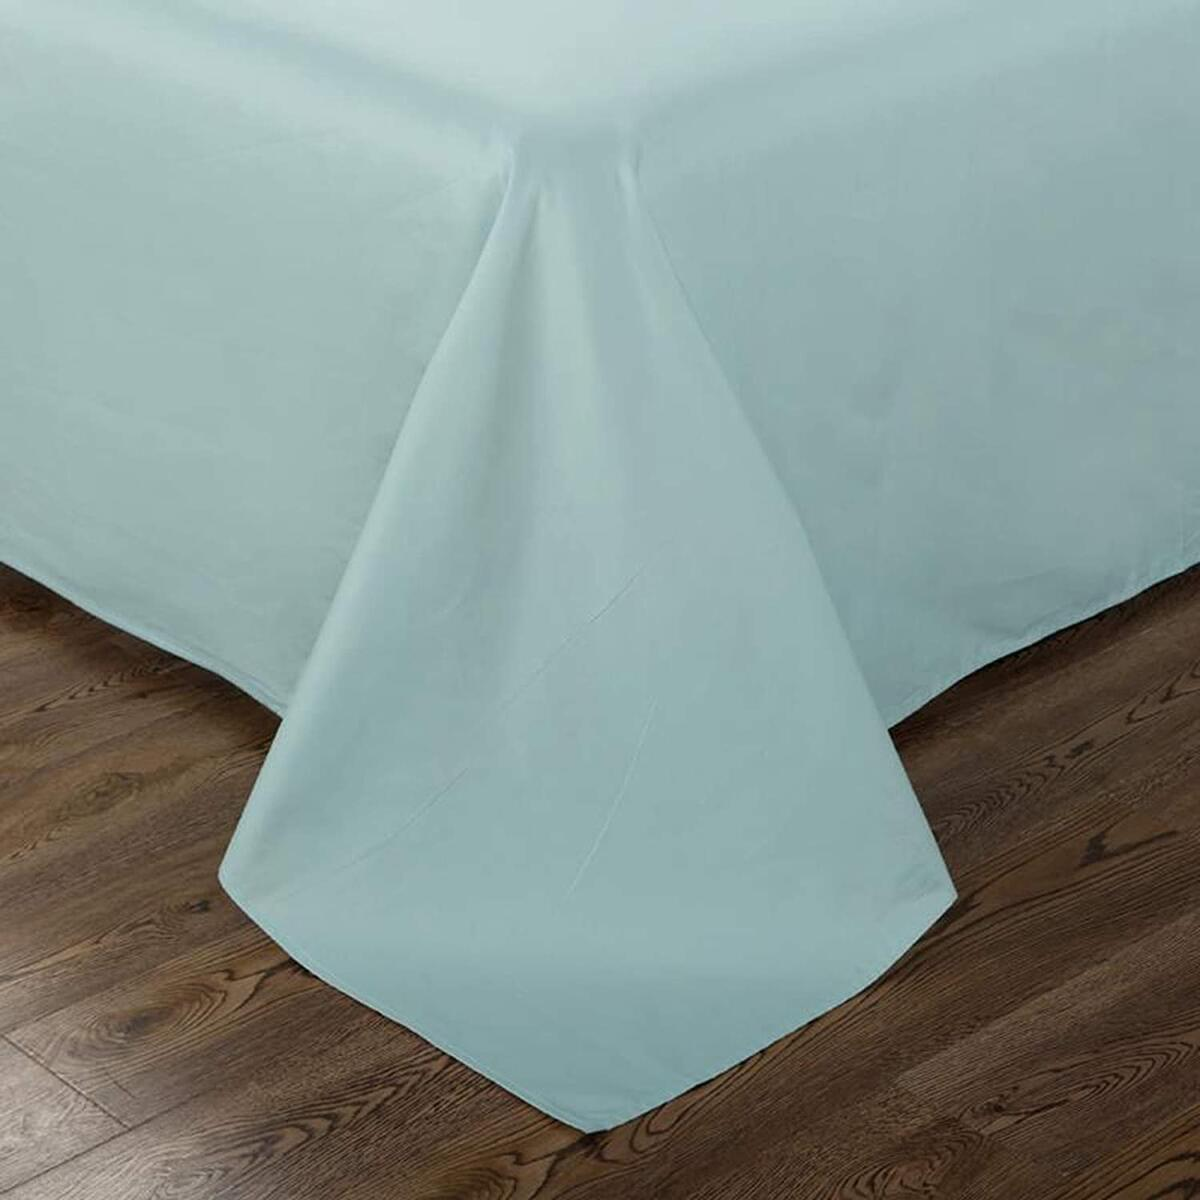 110 Inches Extra Wide 100% Long-Staple Egyptian Cotton Solid Broadcloth Fabric - Combed Cotton for Sewing DIY Crafting - Sold by The Yard (Aqua)…